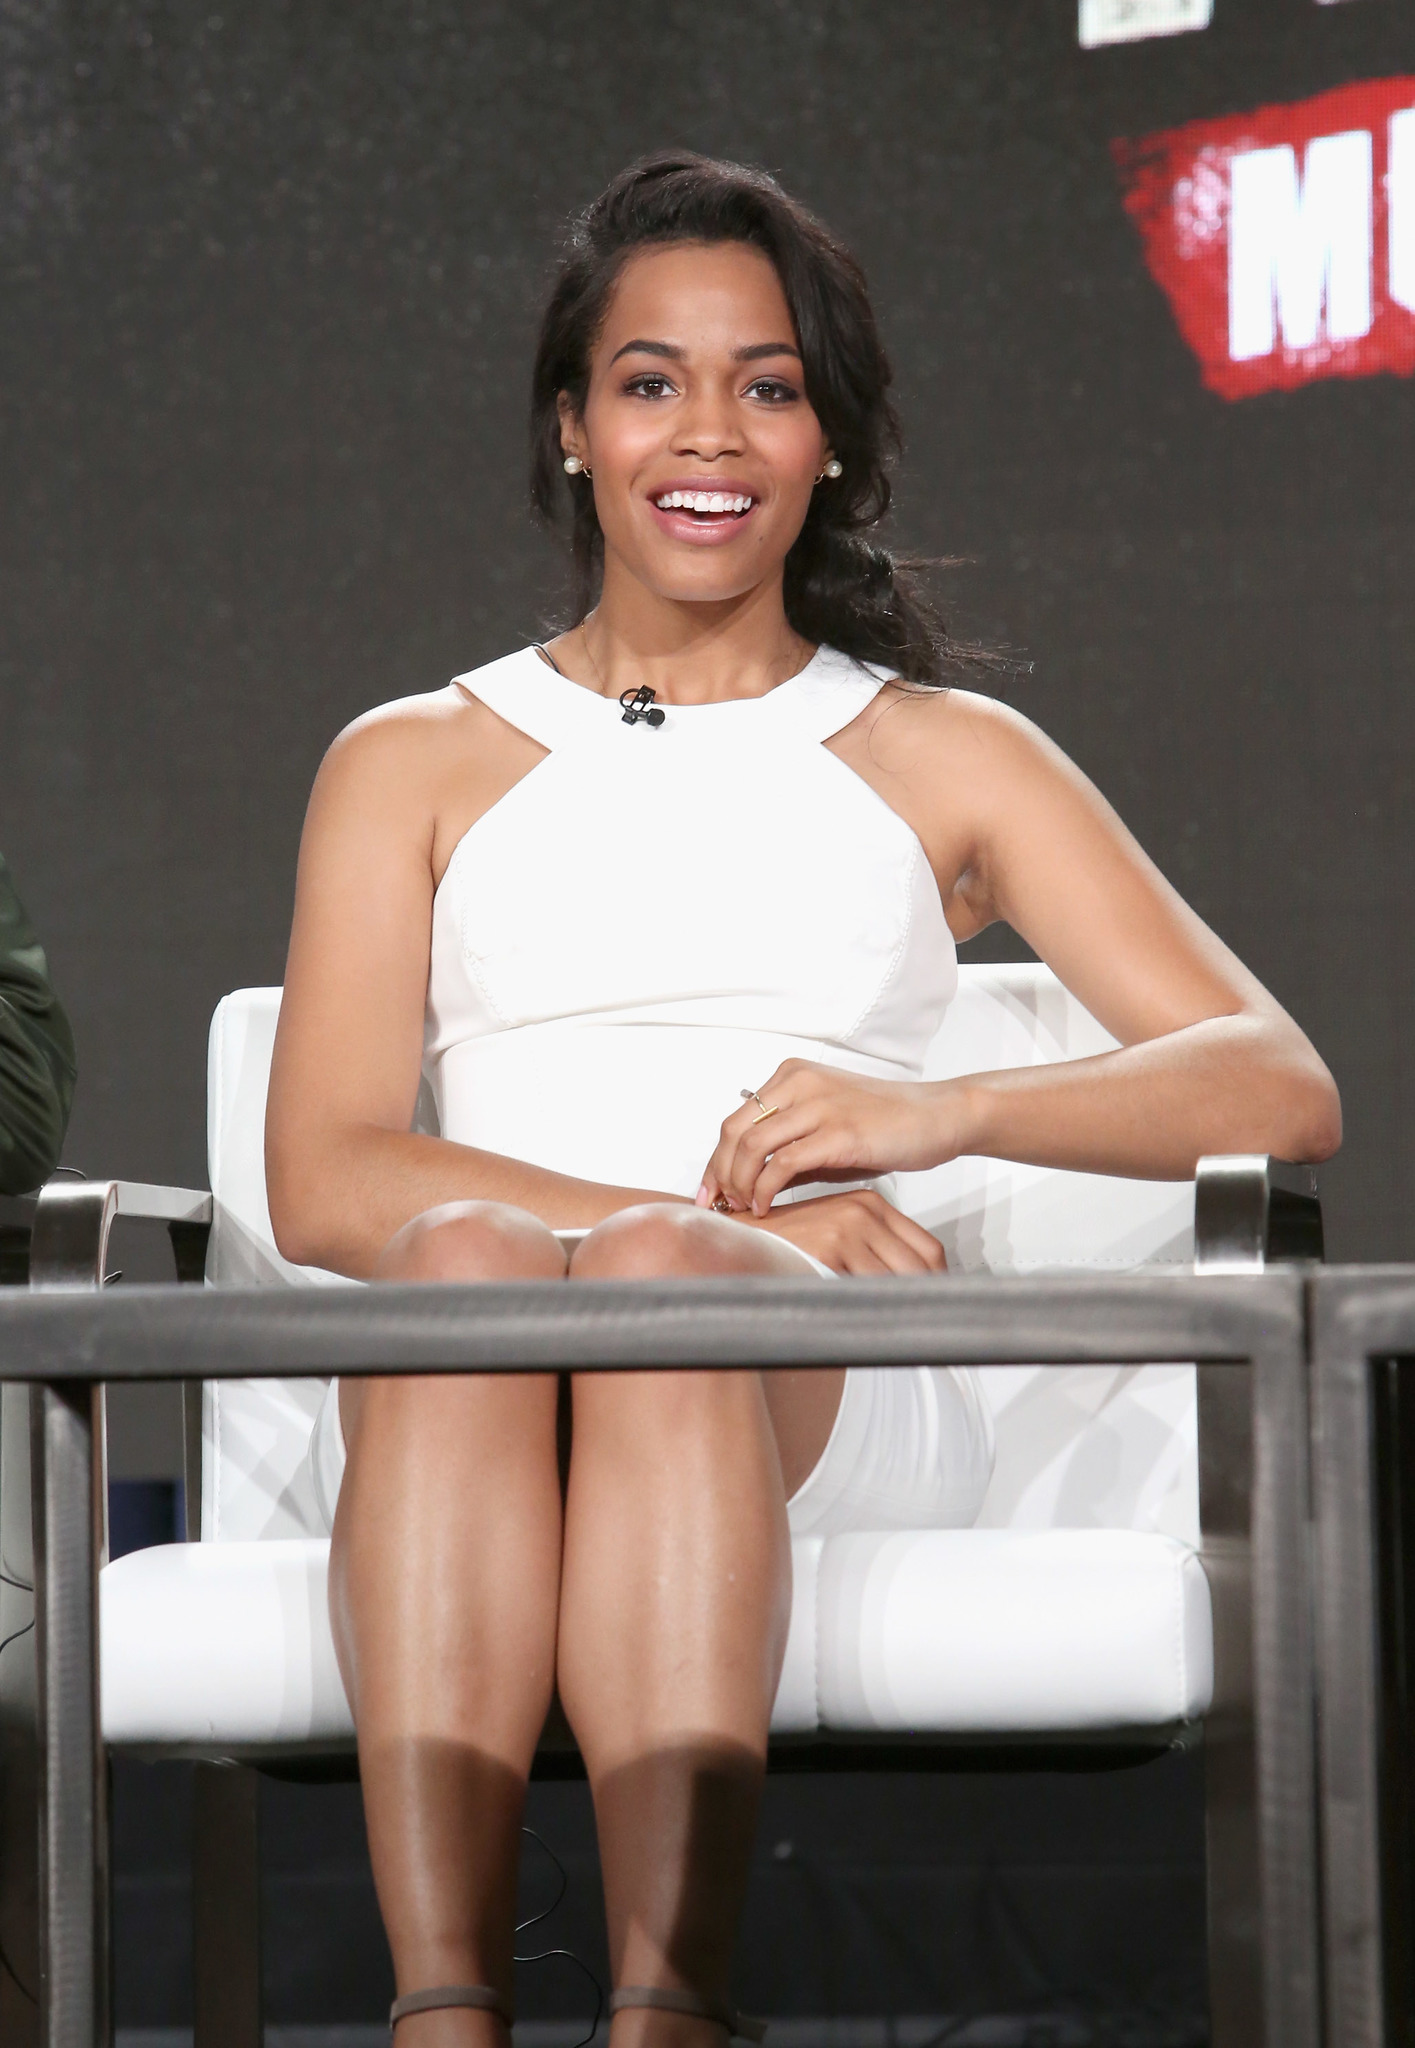 Tiffany Mack at an event for Halt and Catch Fire (2014)